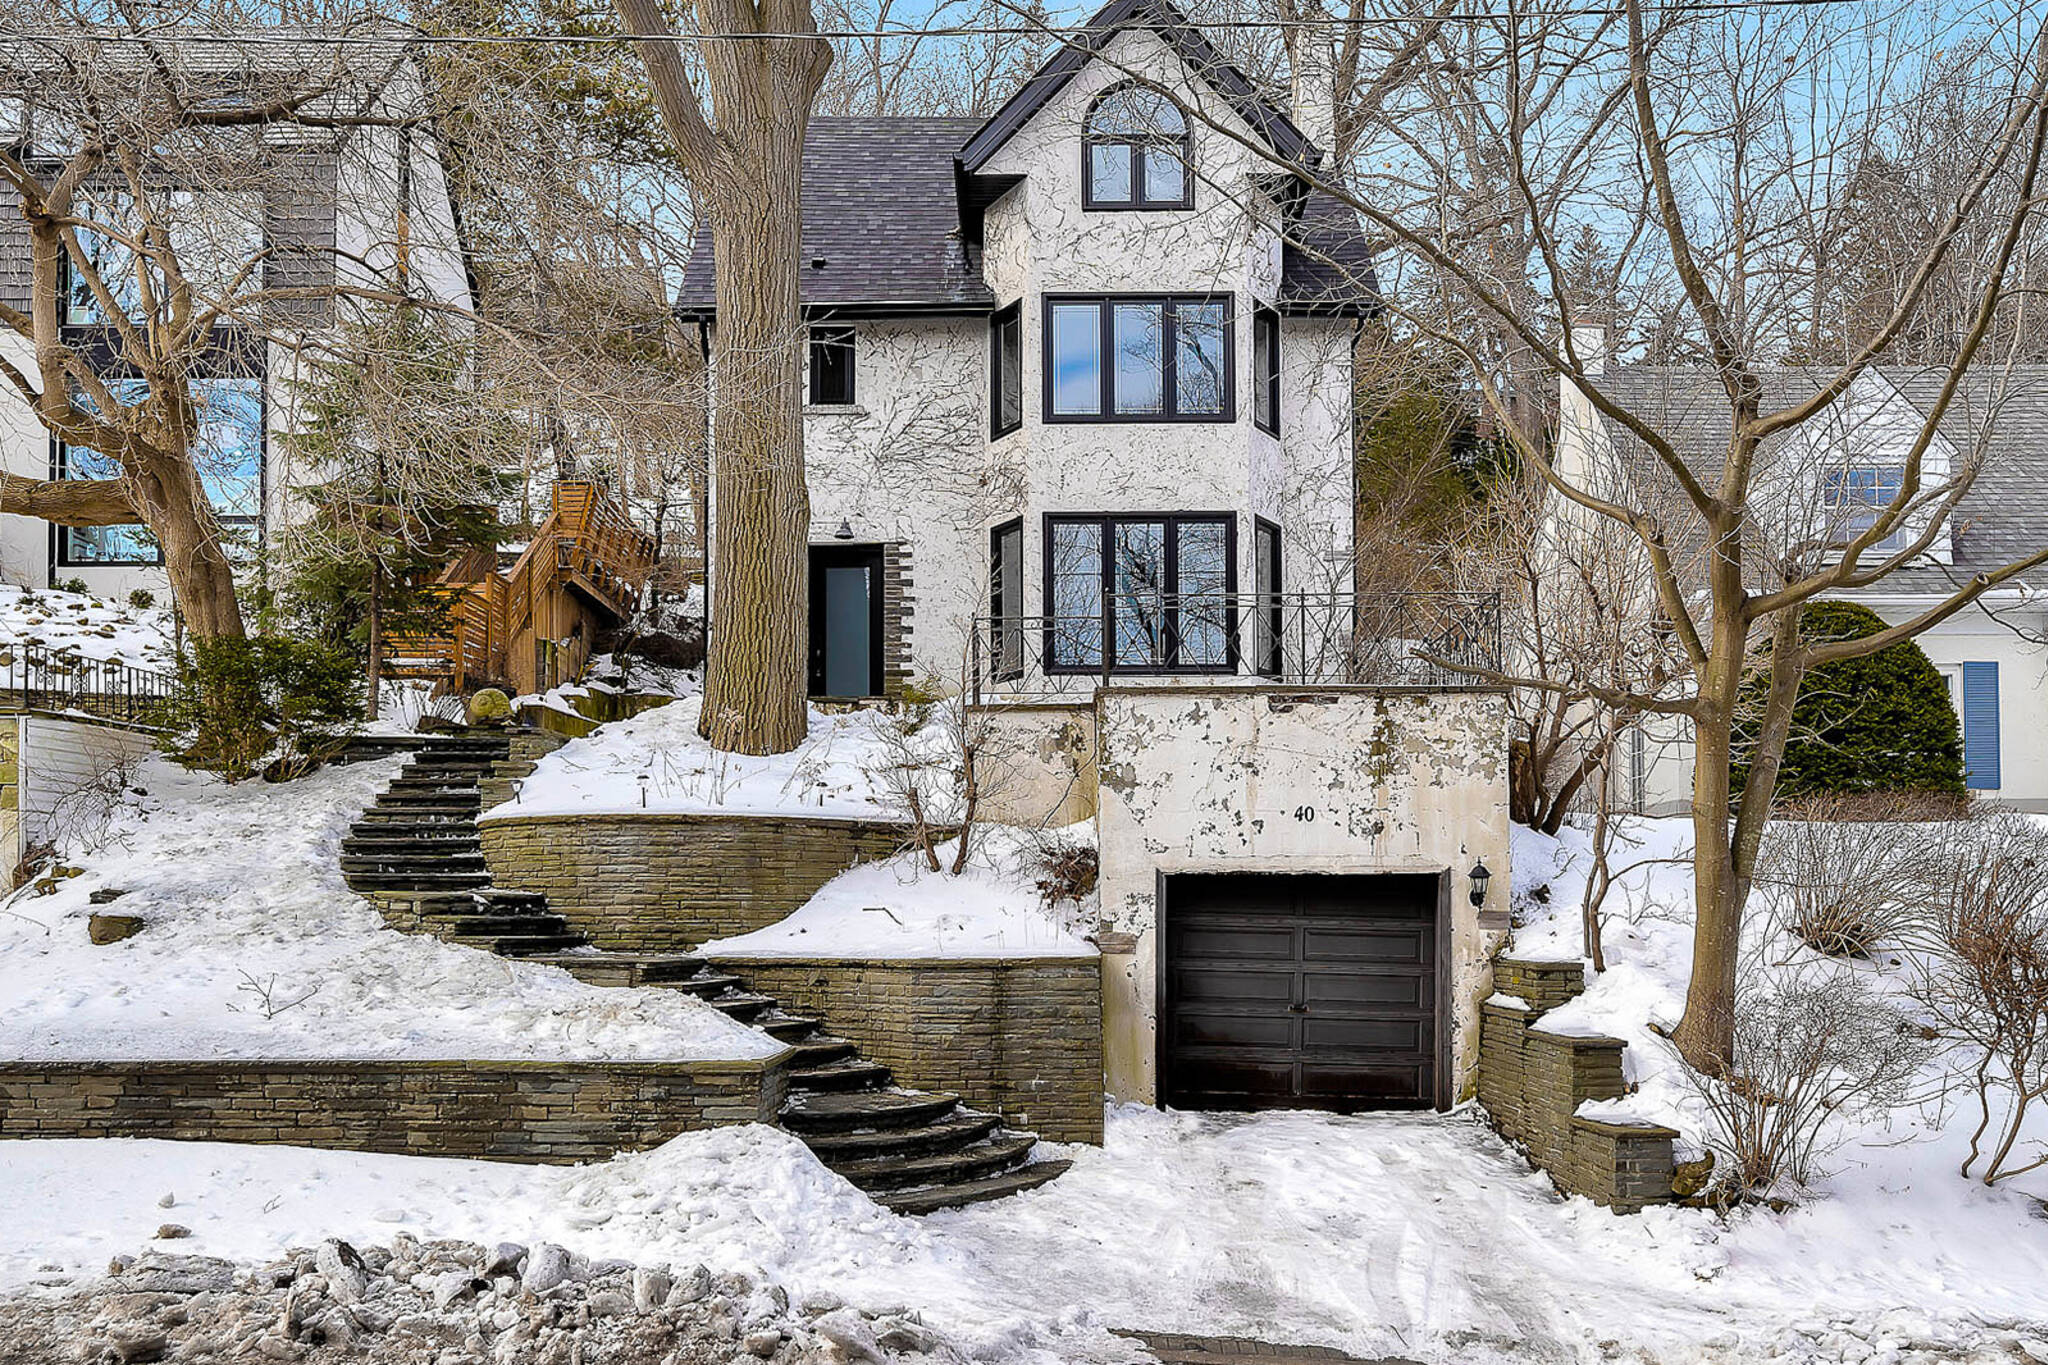 b8eb2df30d4e Sold! This is what a $2.28 million home looks like in Toronto